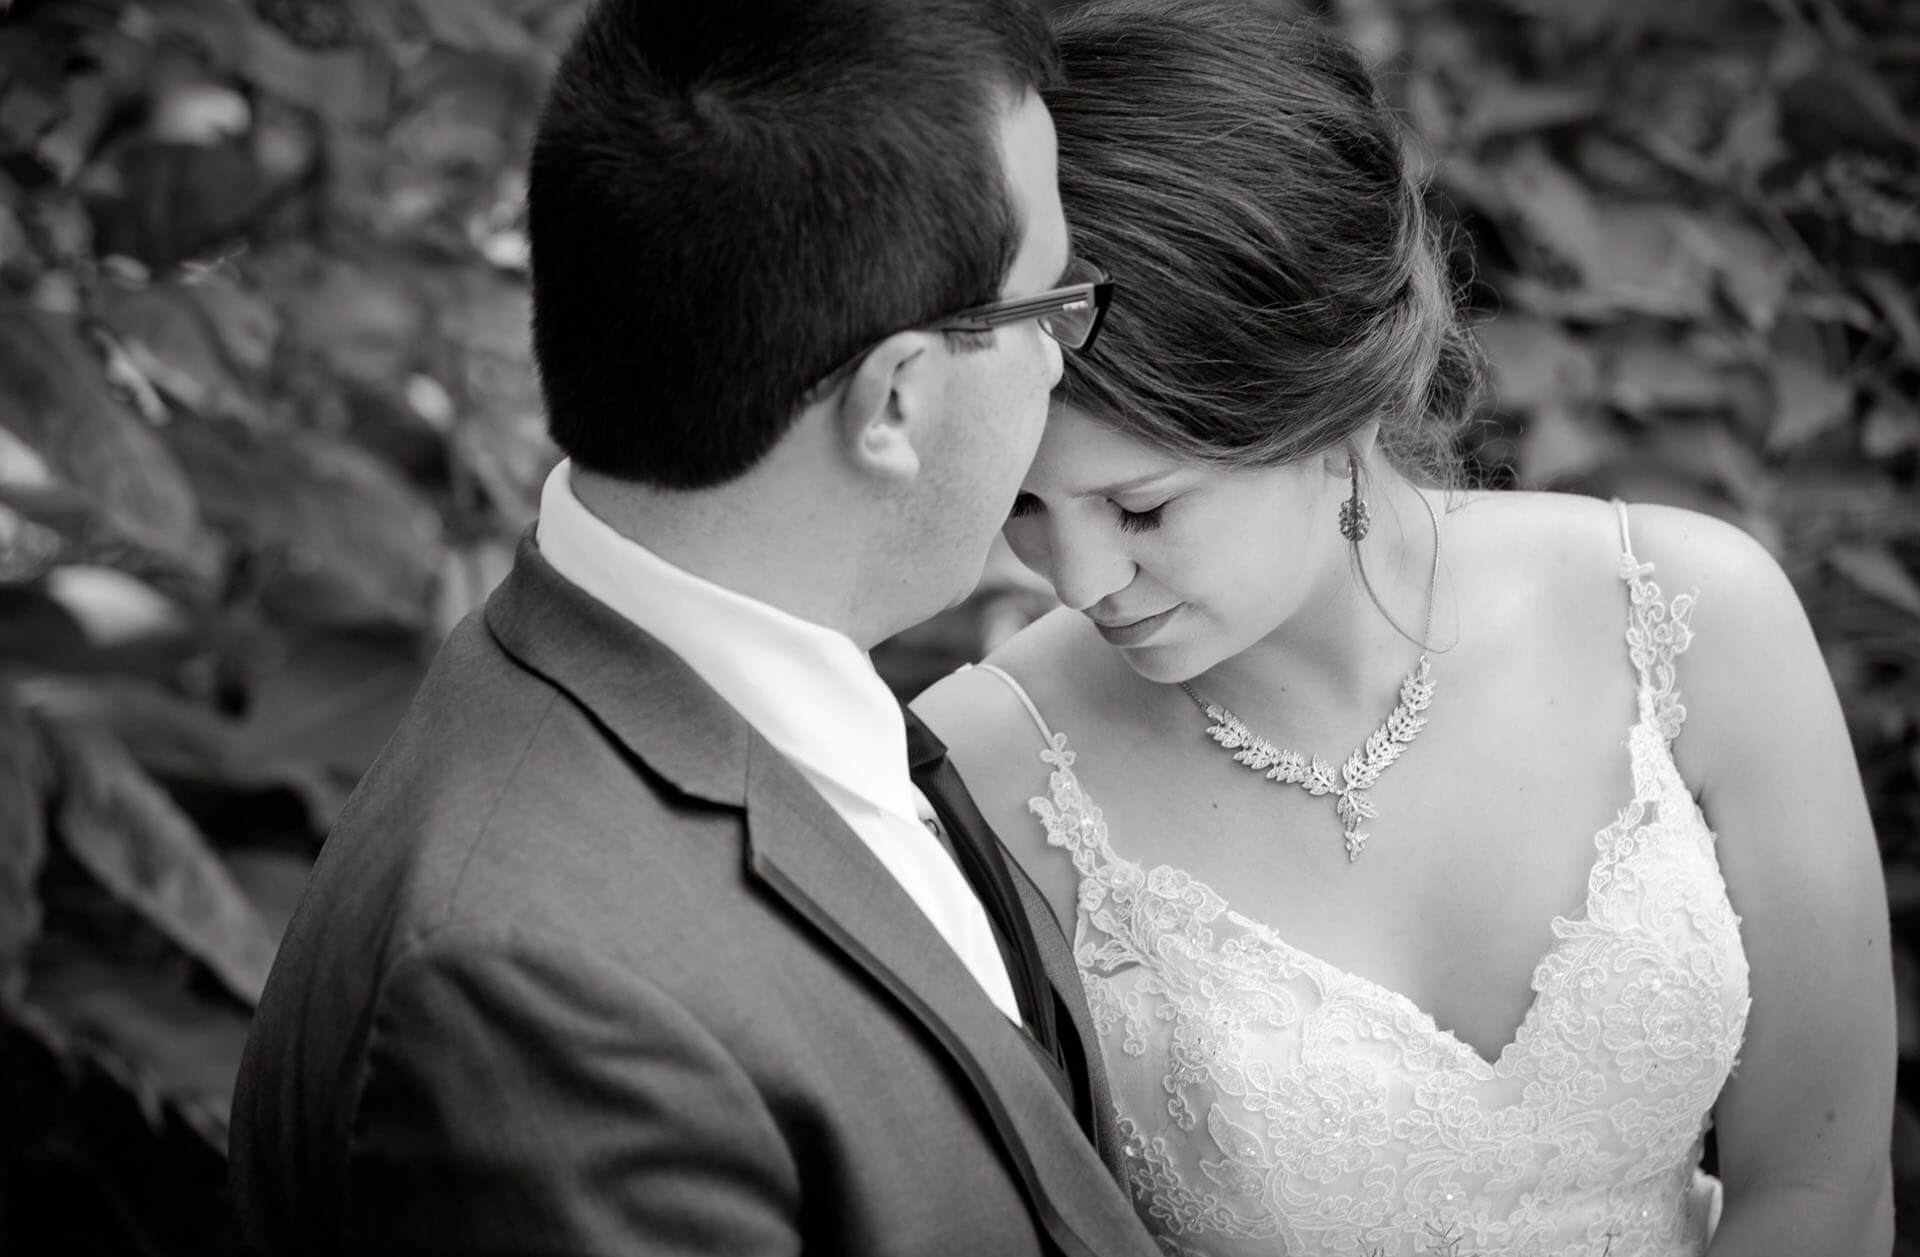 A bride and groom nuzzle before their Saline, Michigan wedding at Wellers for this intimate portrait.